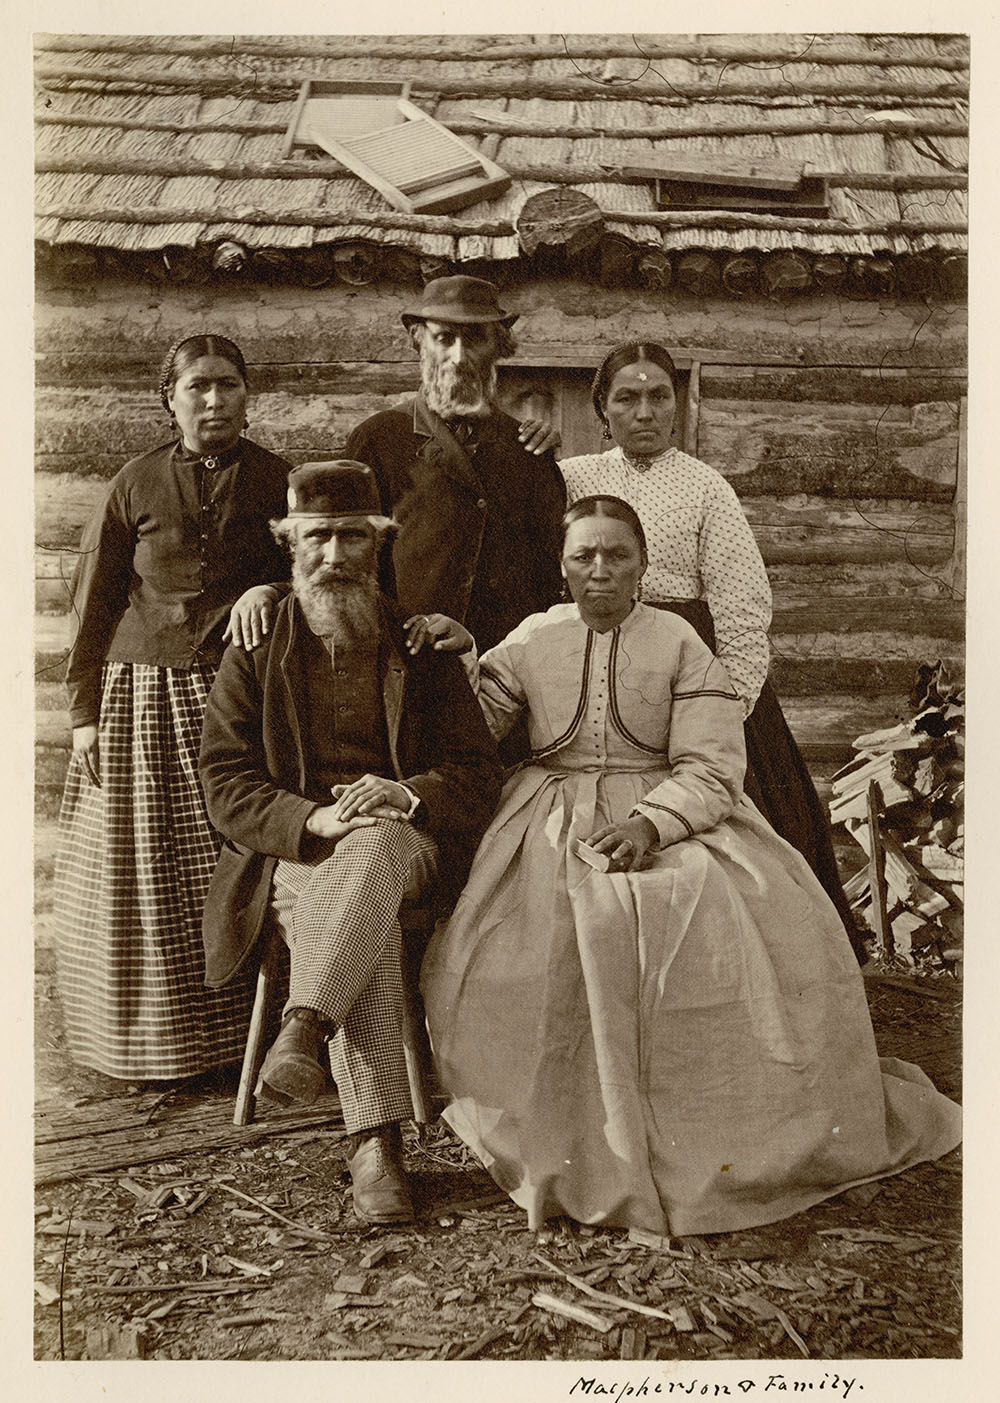 George McPherson and family